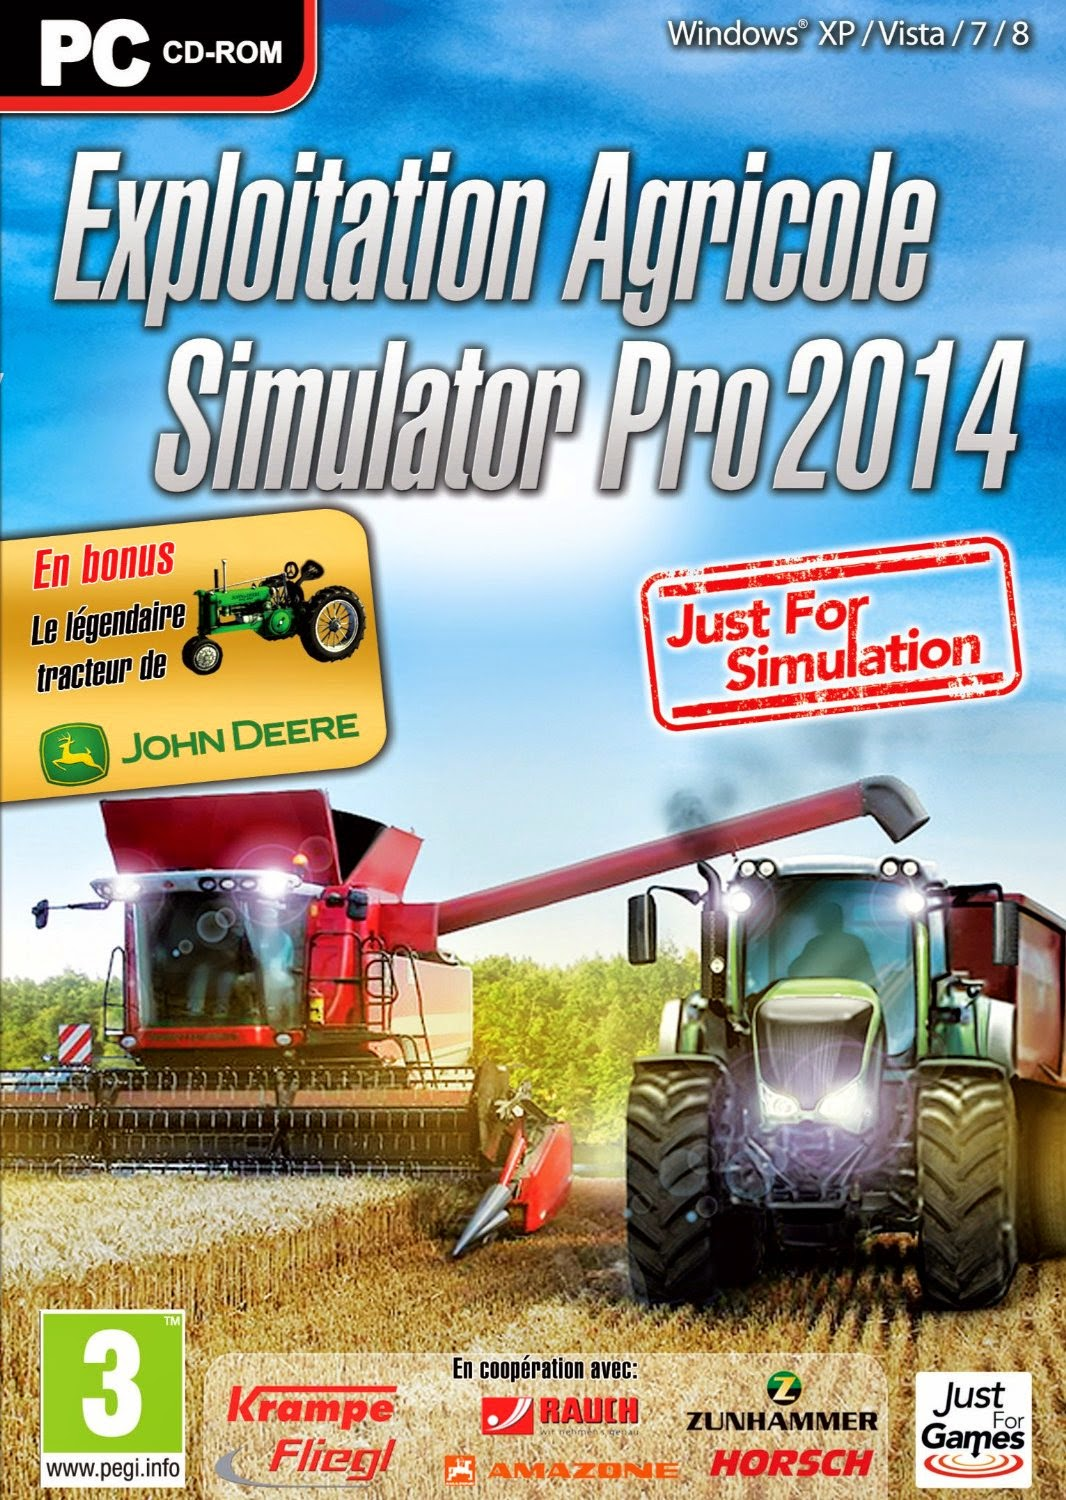 exploitation agricole simulator pro 2014 jeu complet pour pc en francais crack inclus. Black Bedroom Furniture Sets. Home Design Ideas